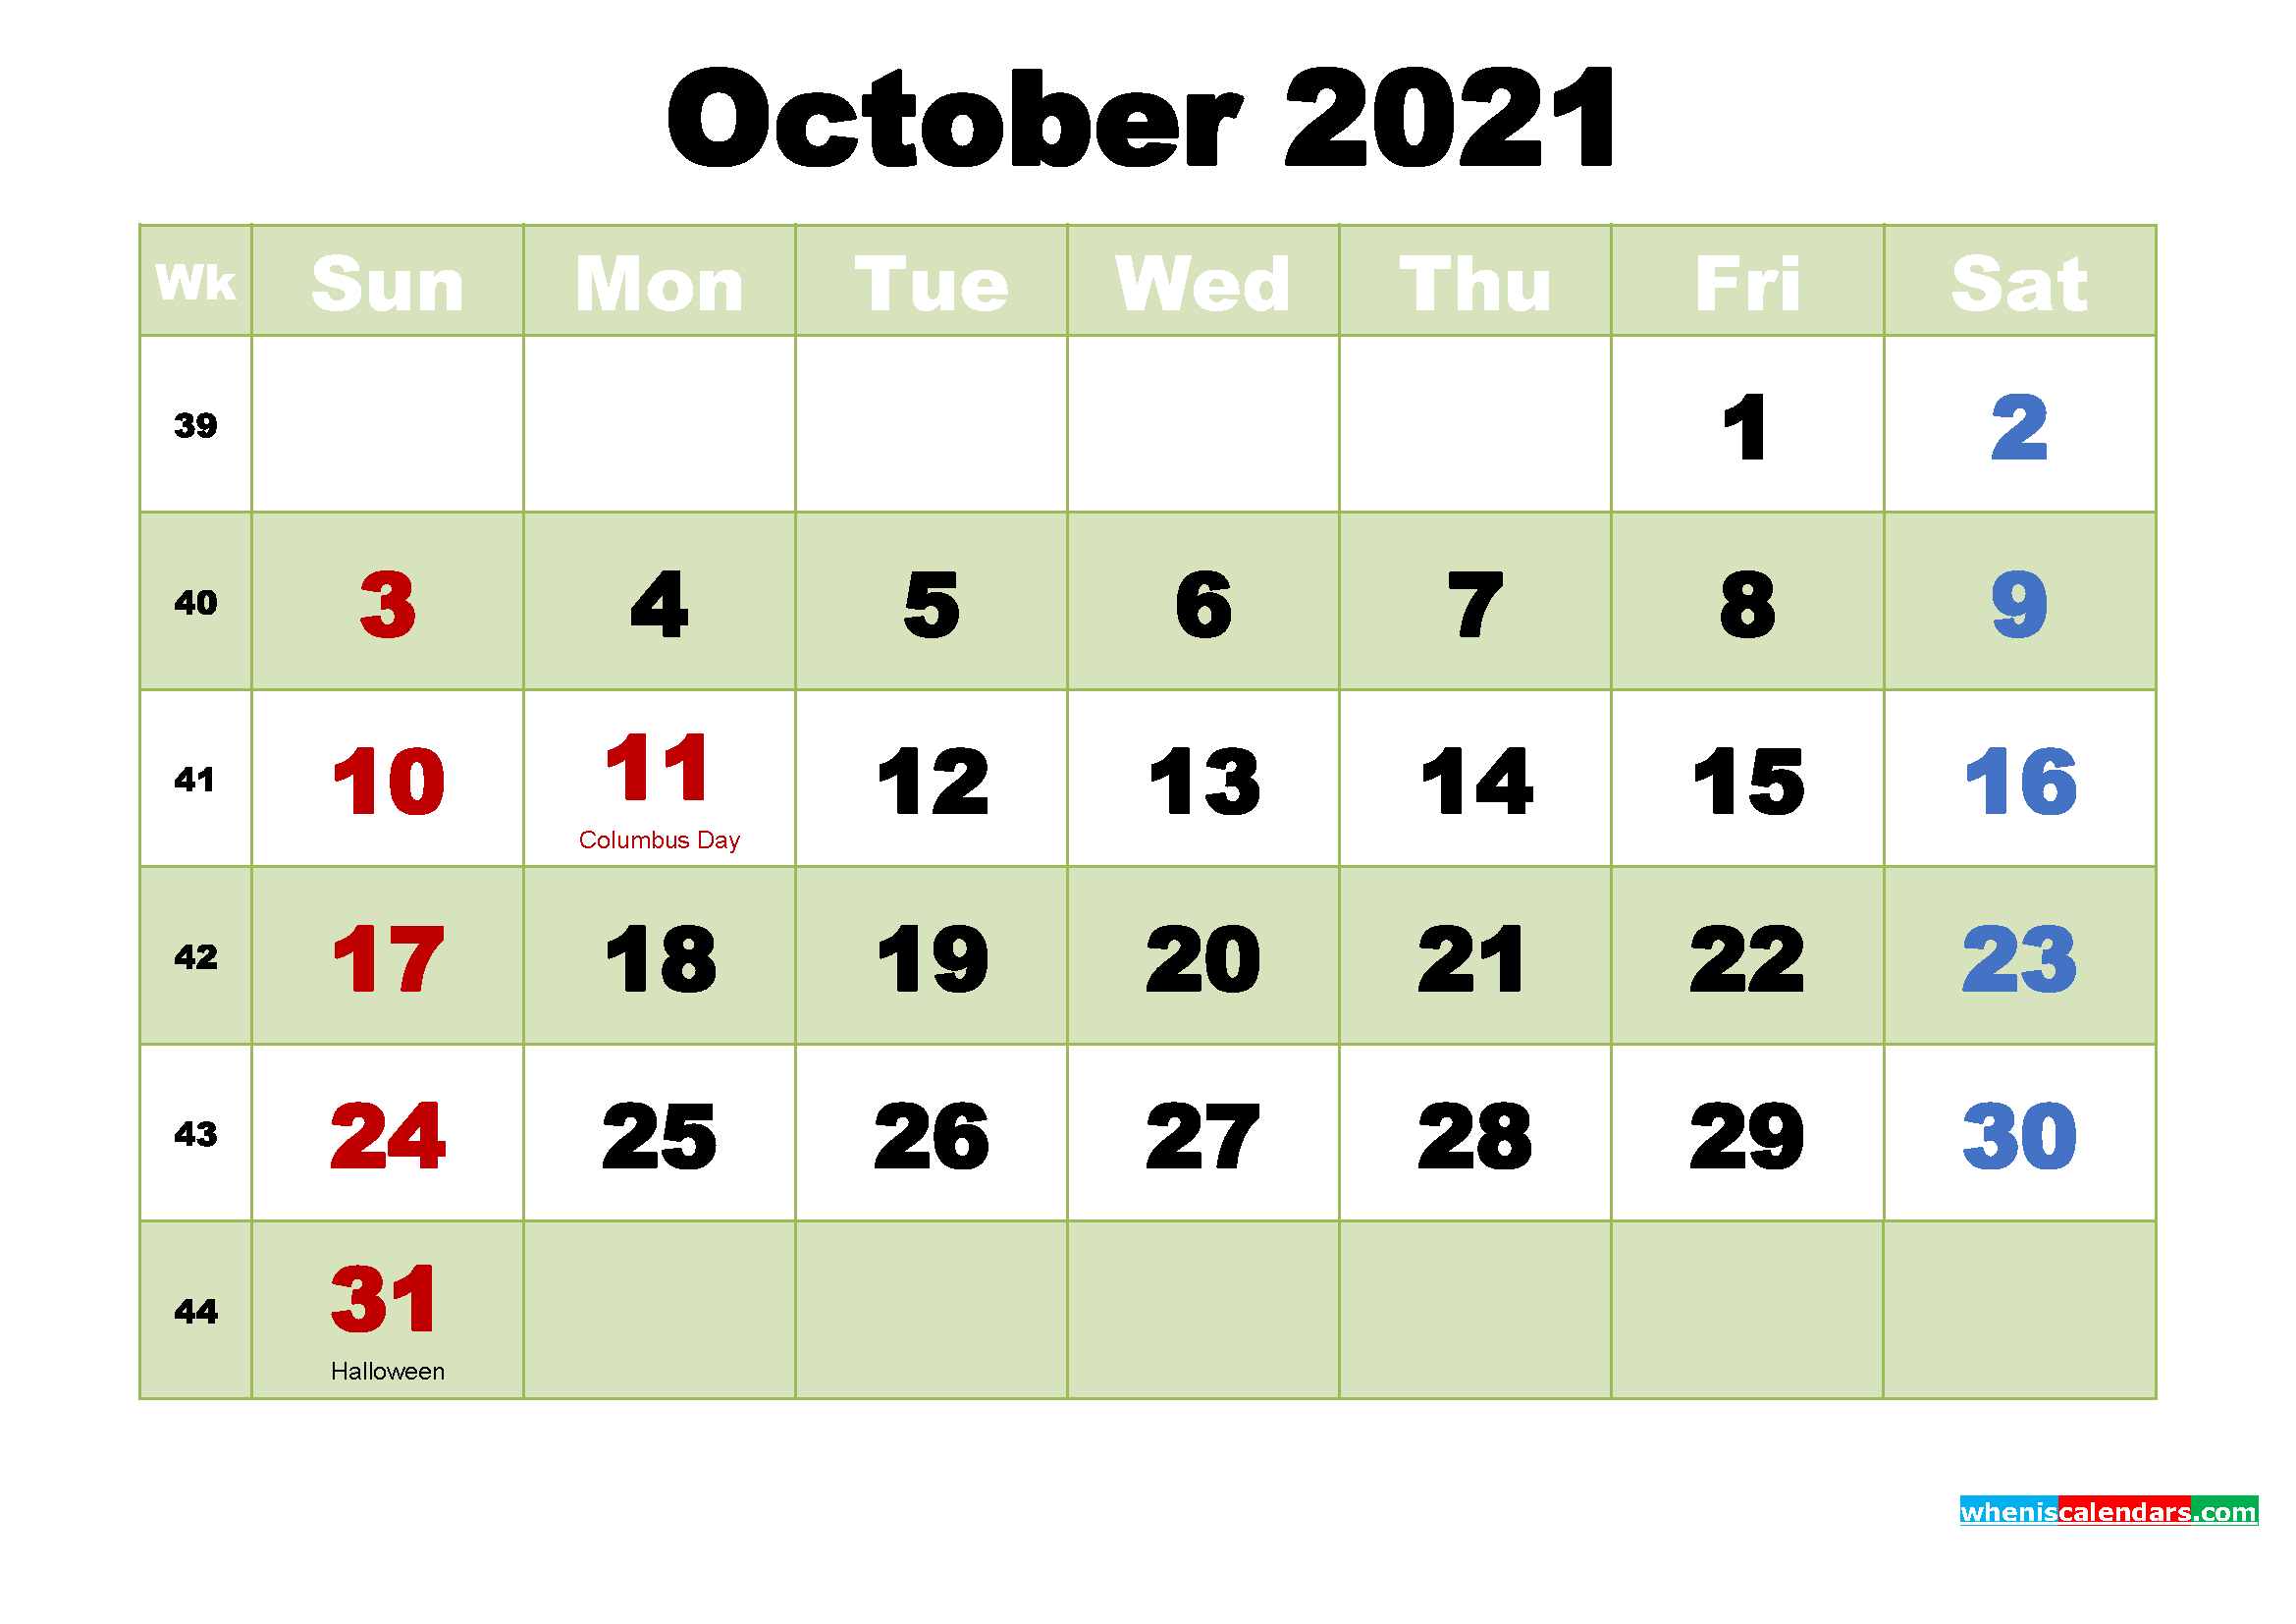 October 2021 Desktop Calendar Free Download